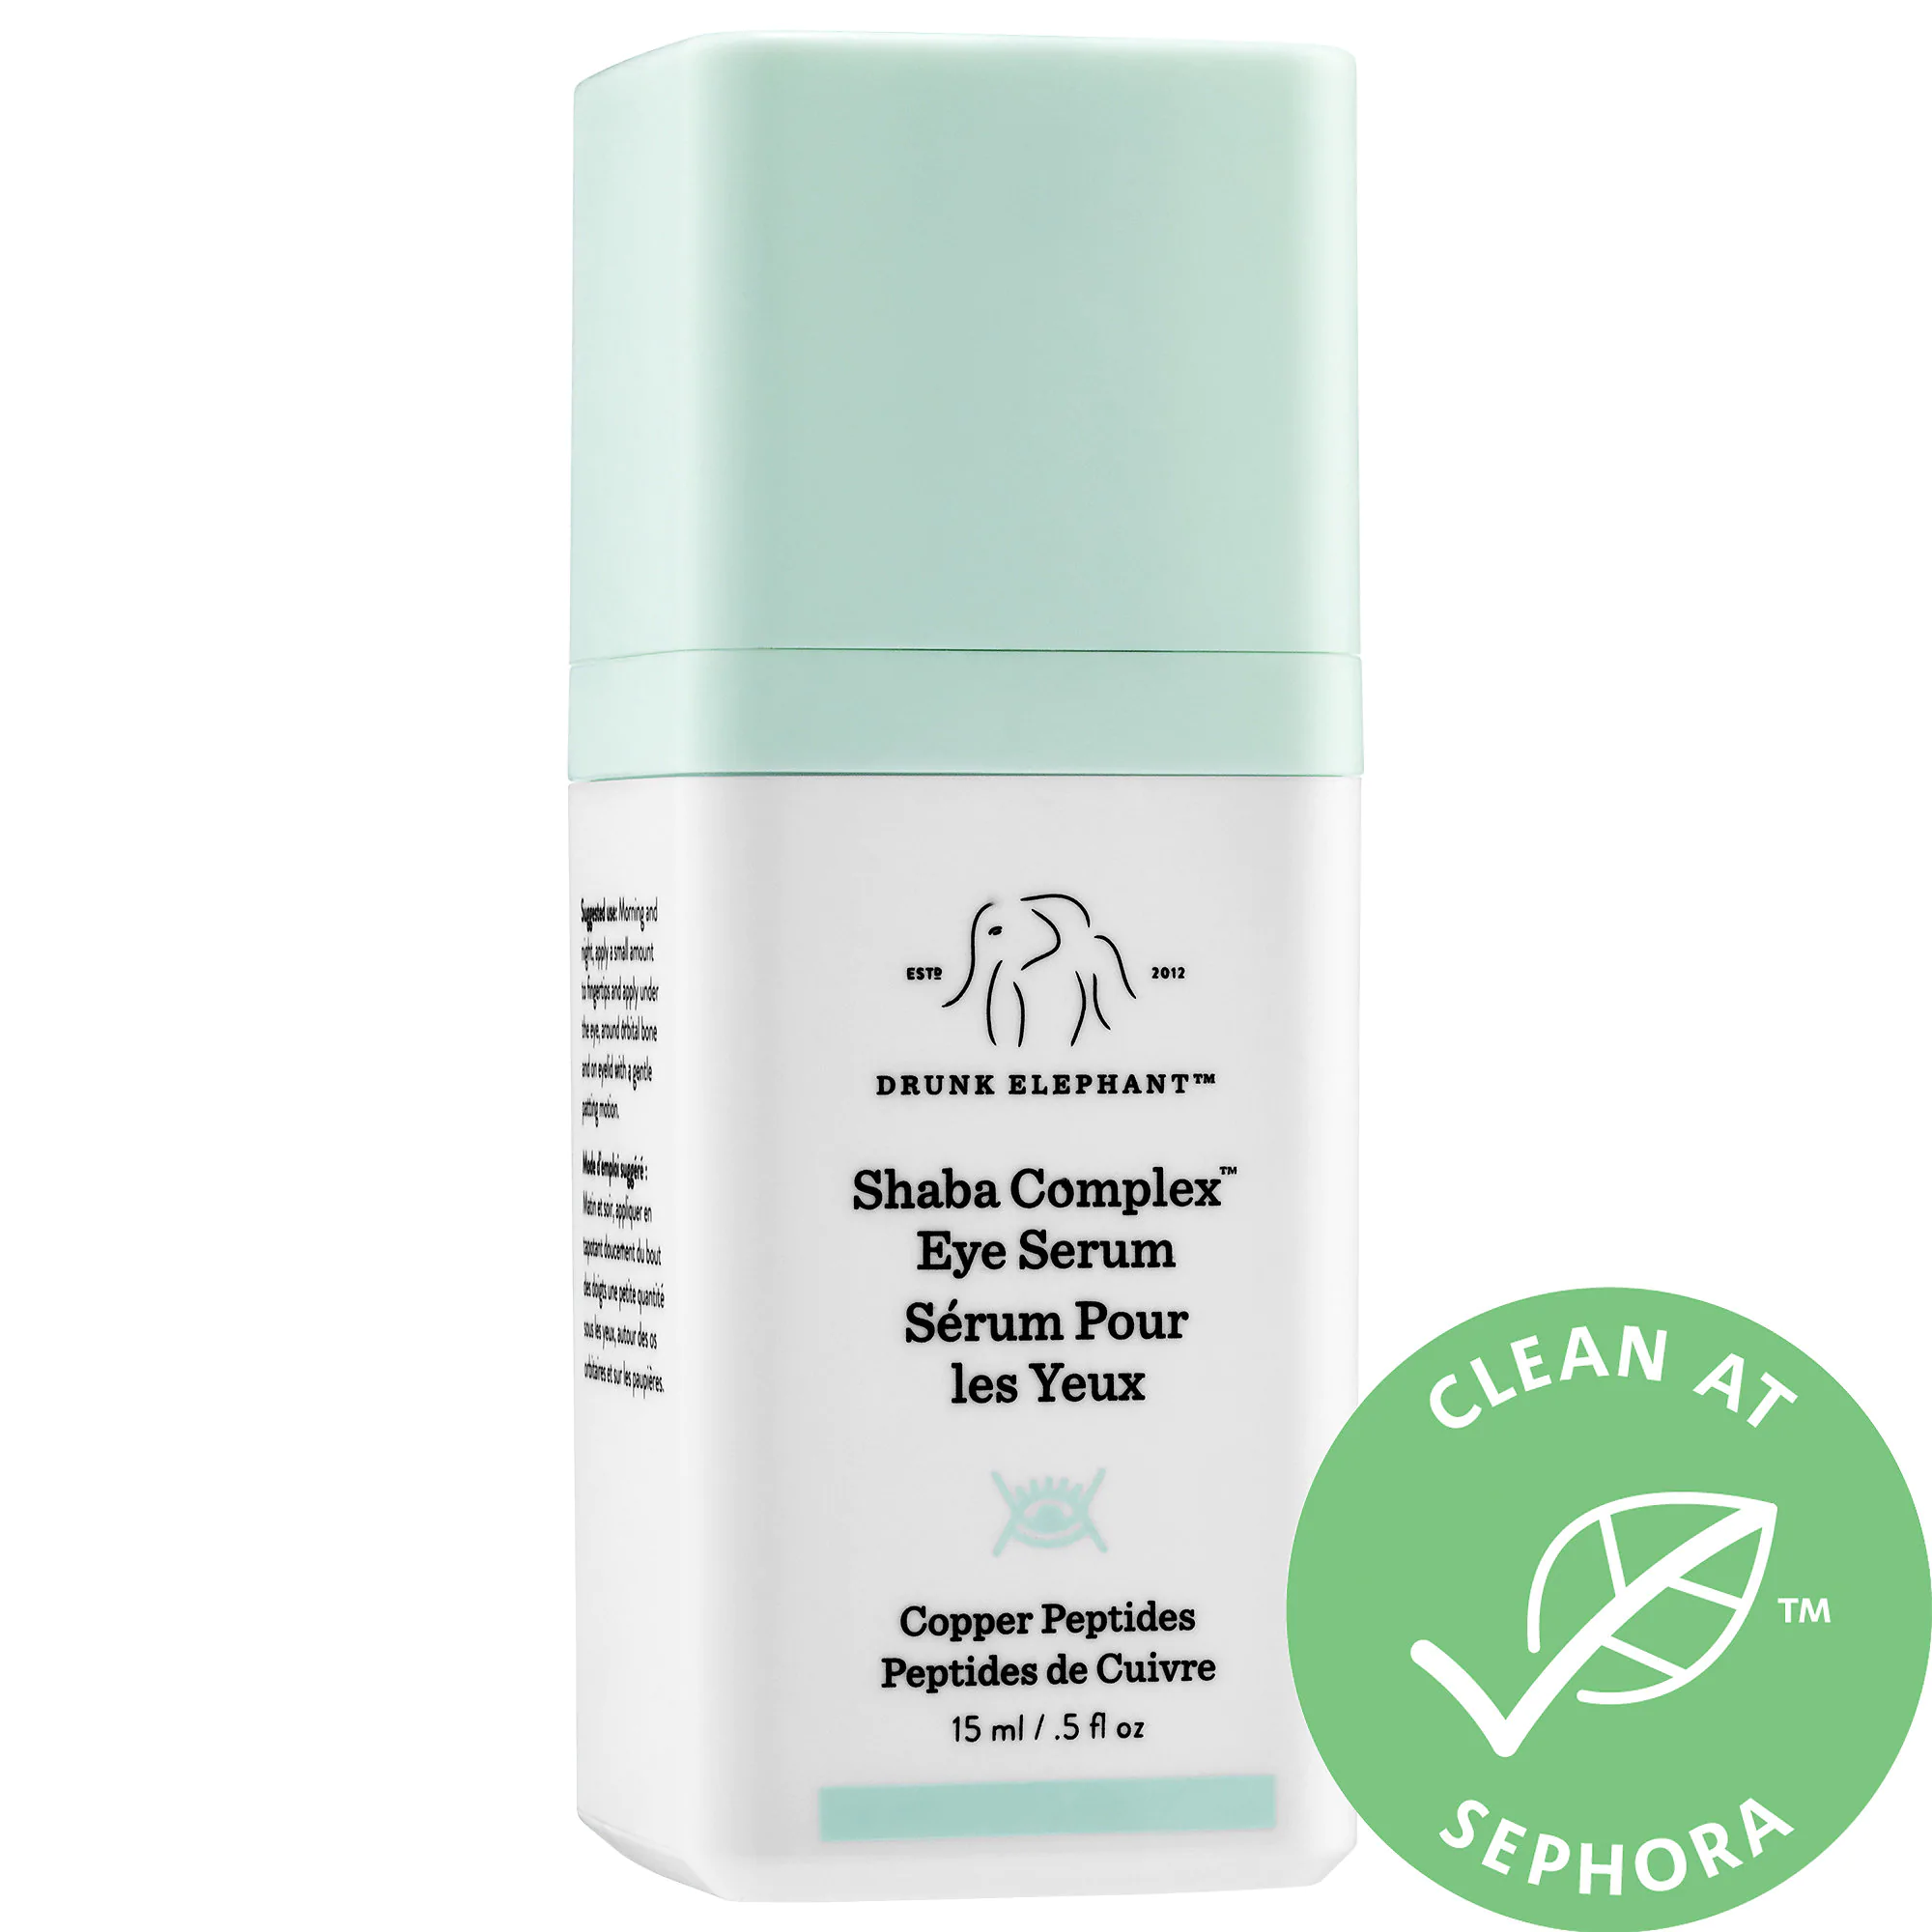 Drunk Elephant-Shaba Complex™ Firming Eye Serum